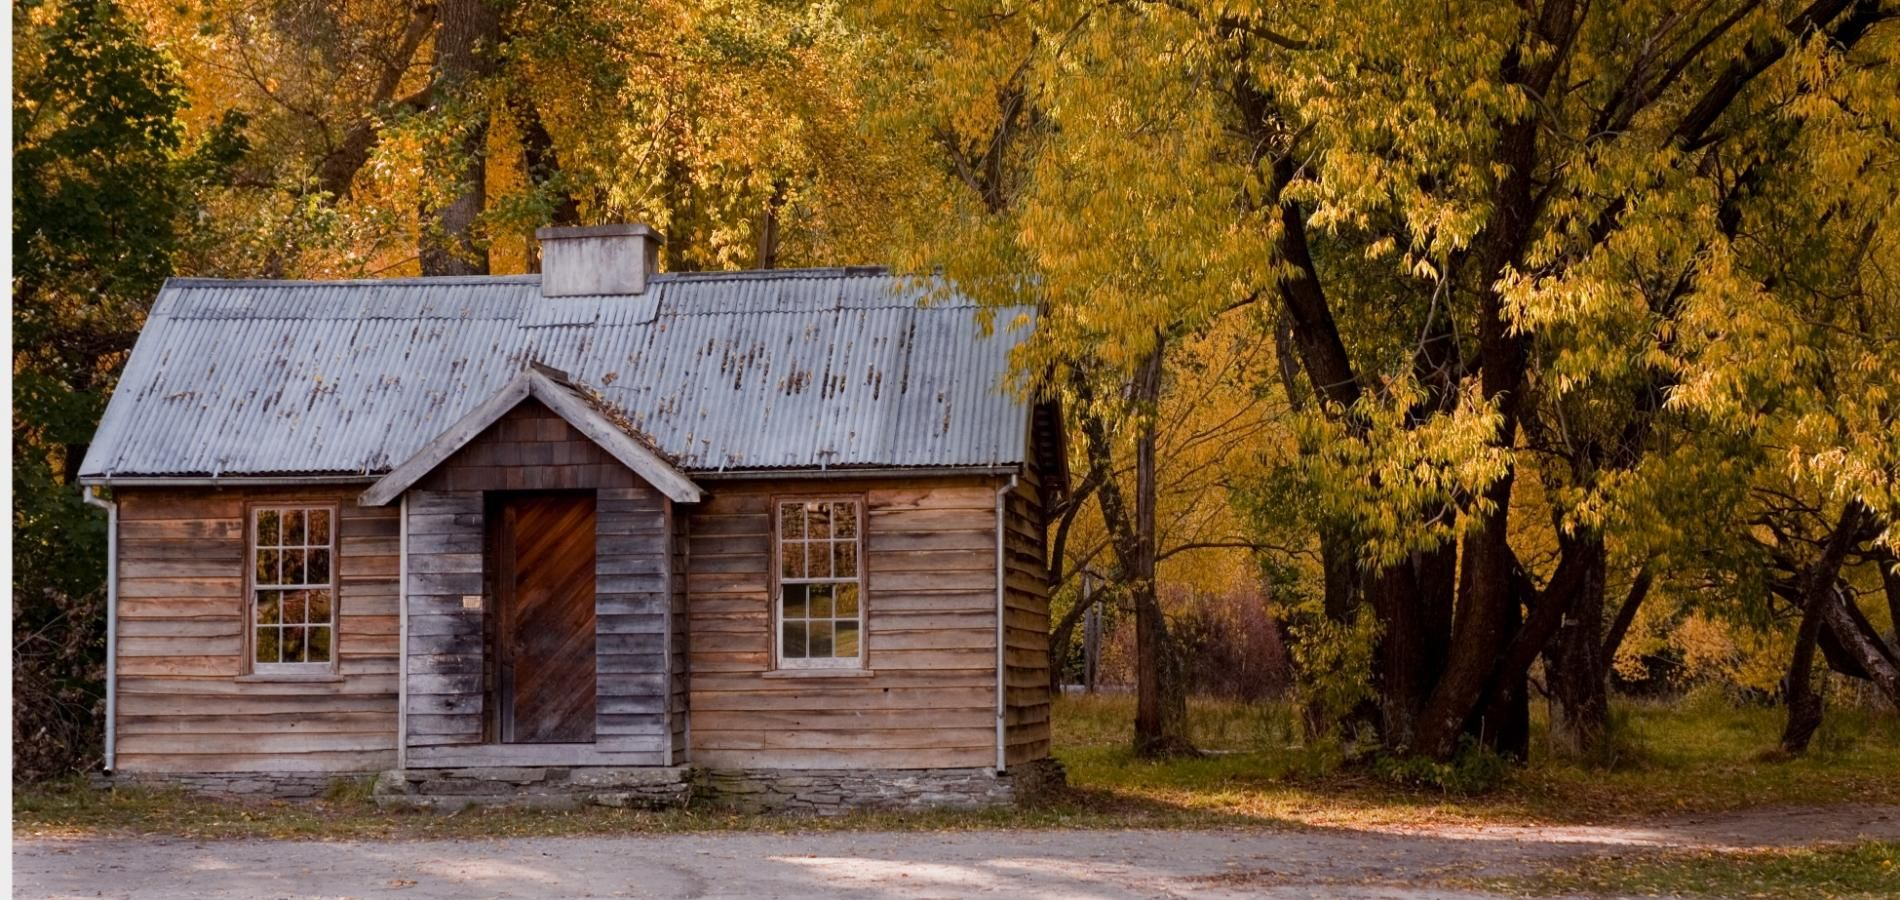 Historic Cottage by Arrow River in Autumn Queenstown